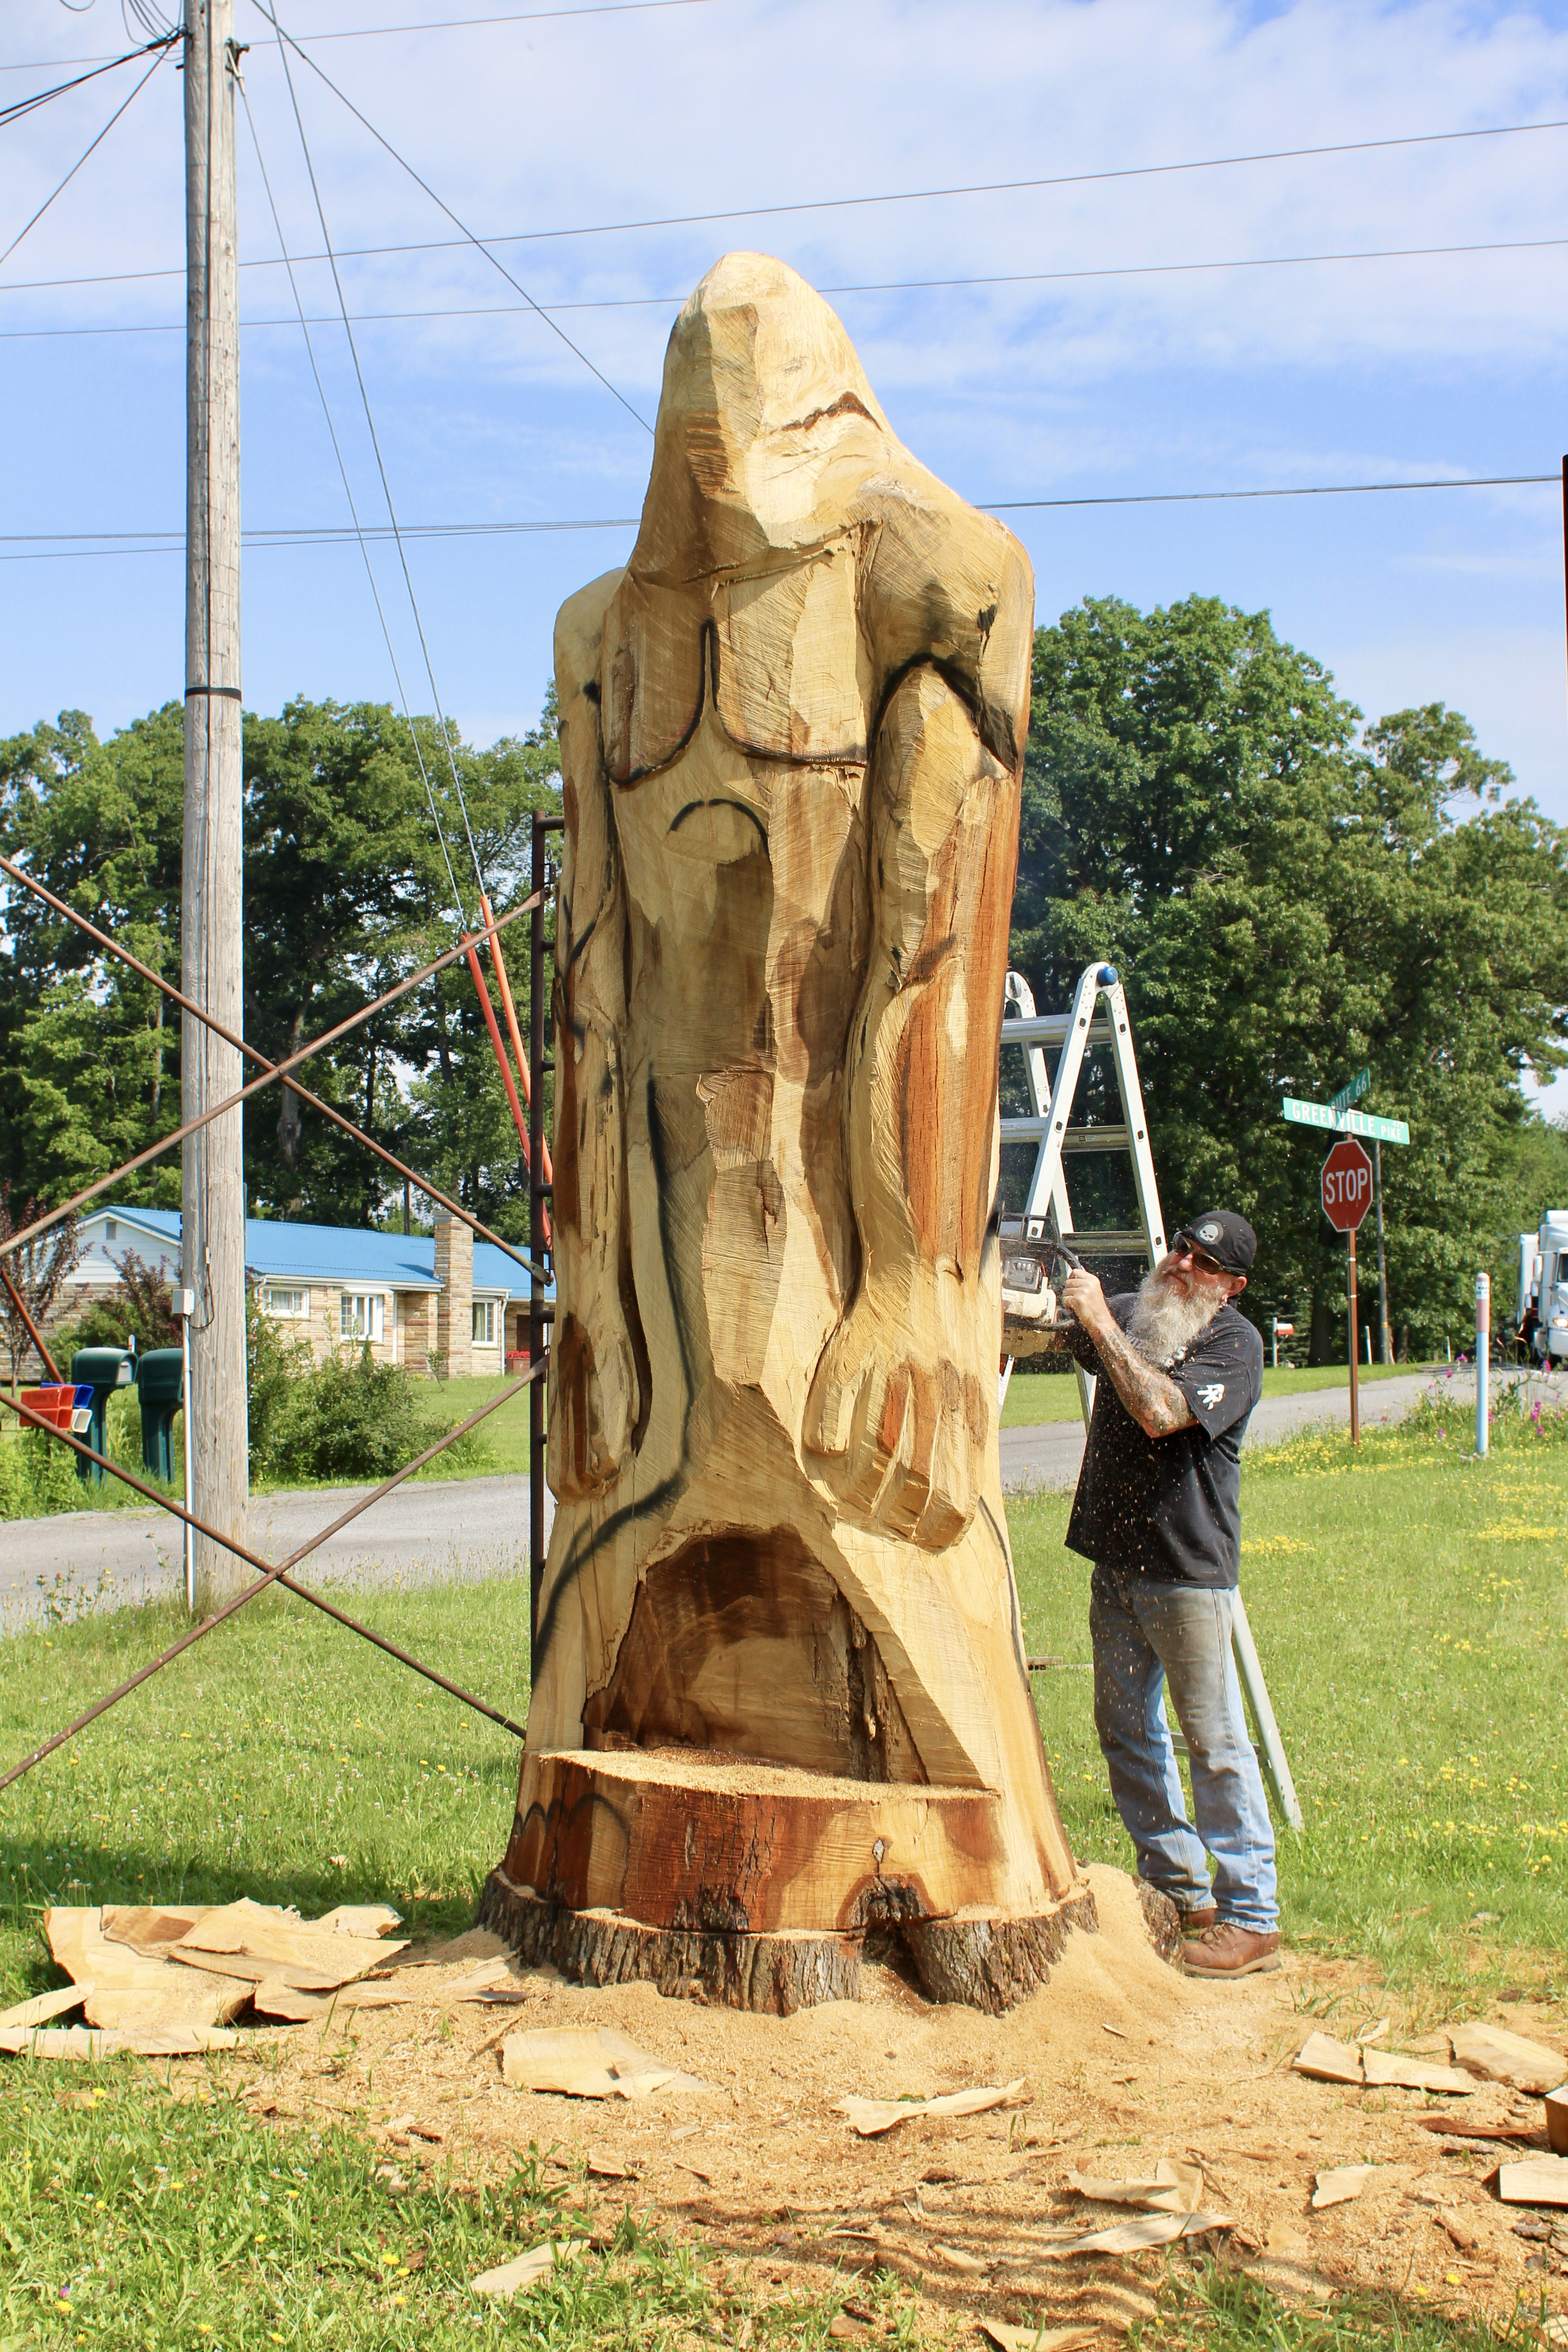 Area woodcarver interviewed by cnn after 'chainsaw trump